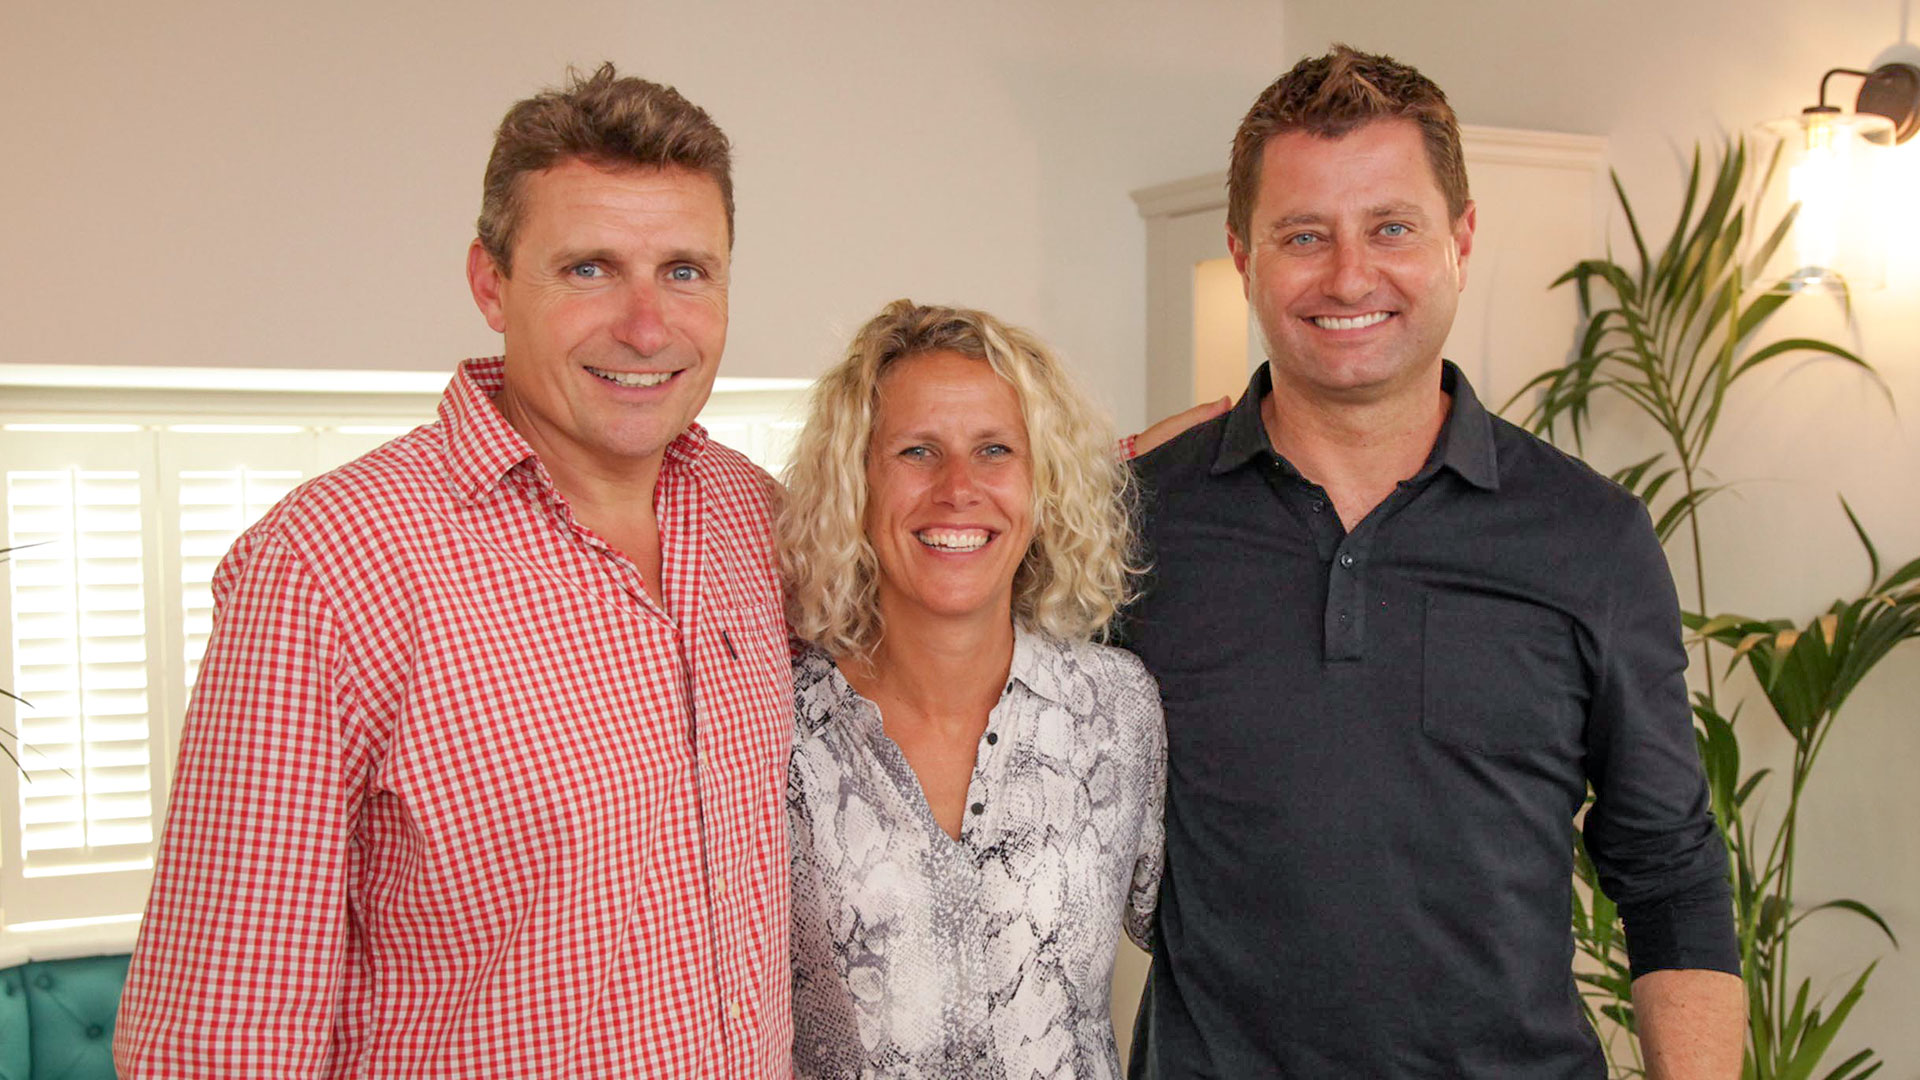 George Clarke's Old House, New Home - All 4